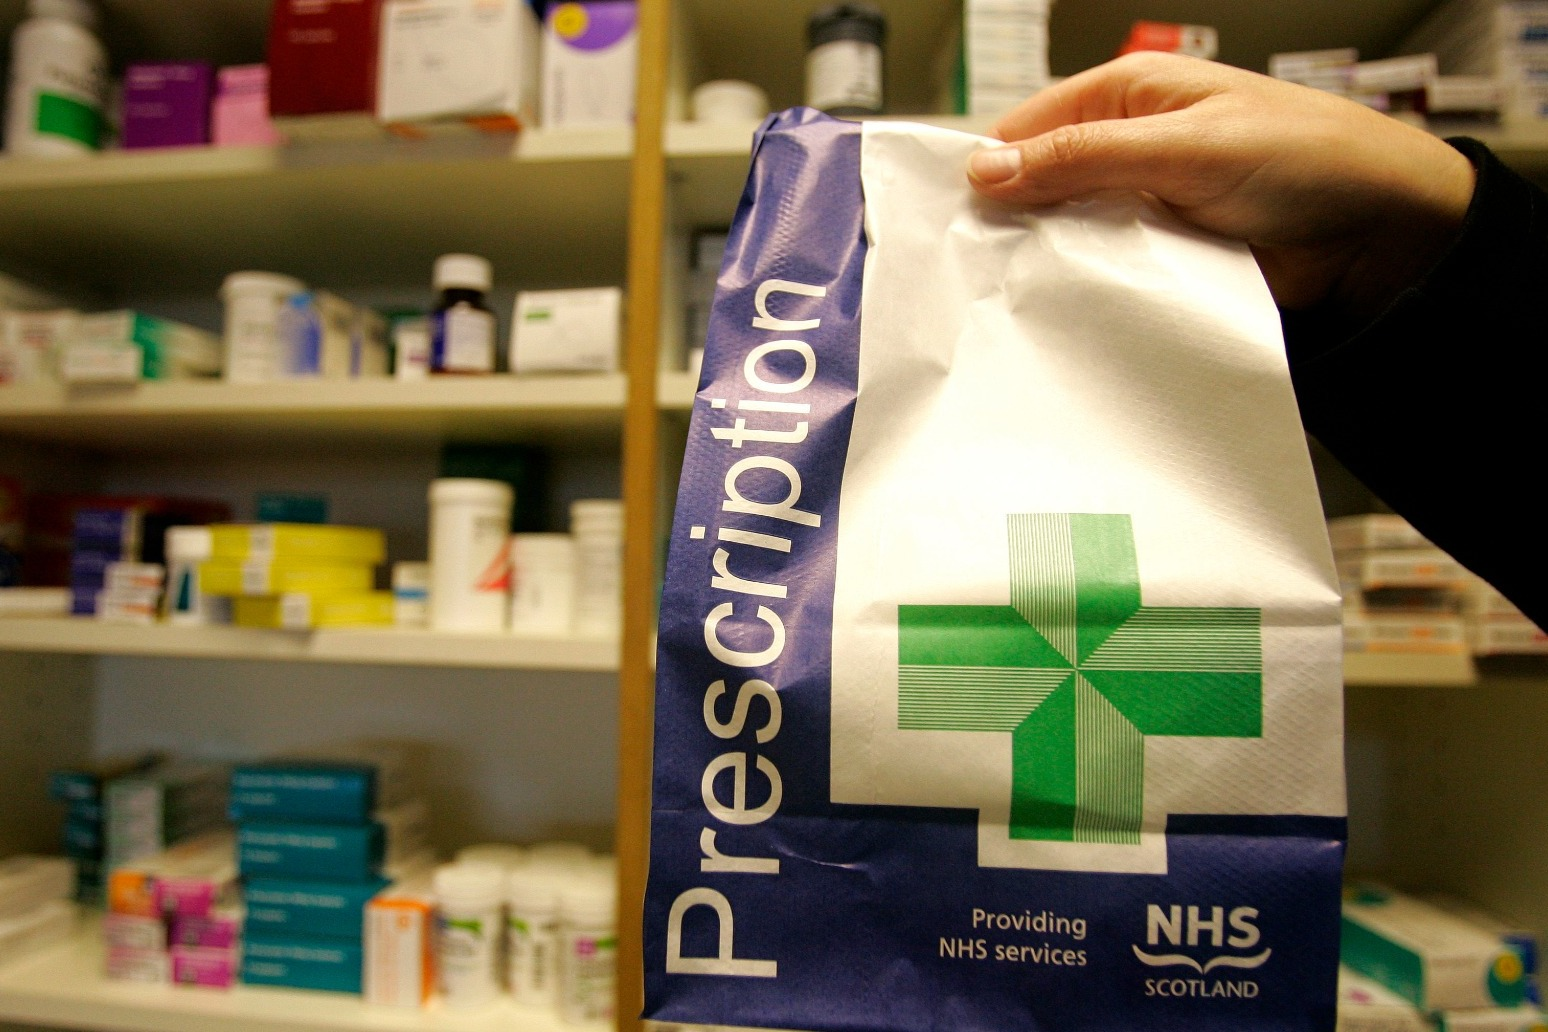 More patients being referred to pharmacies